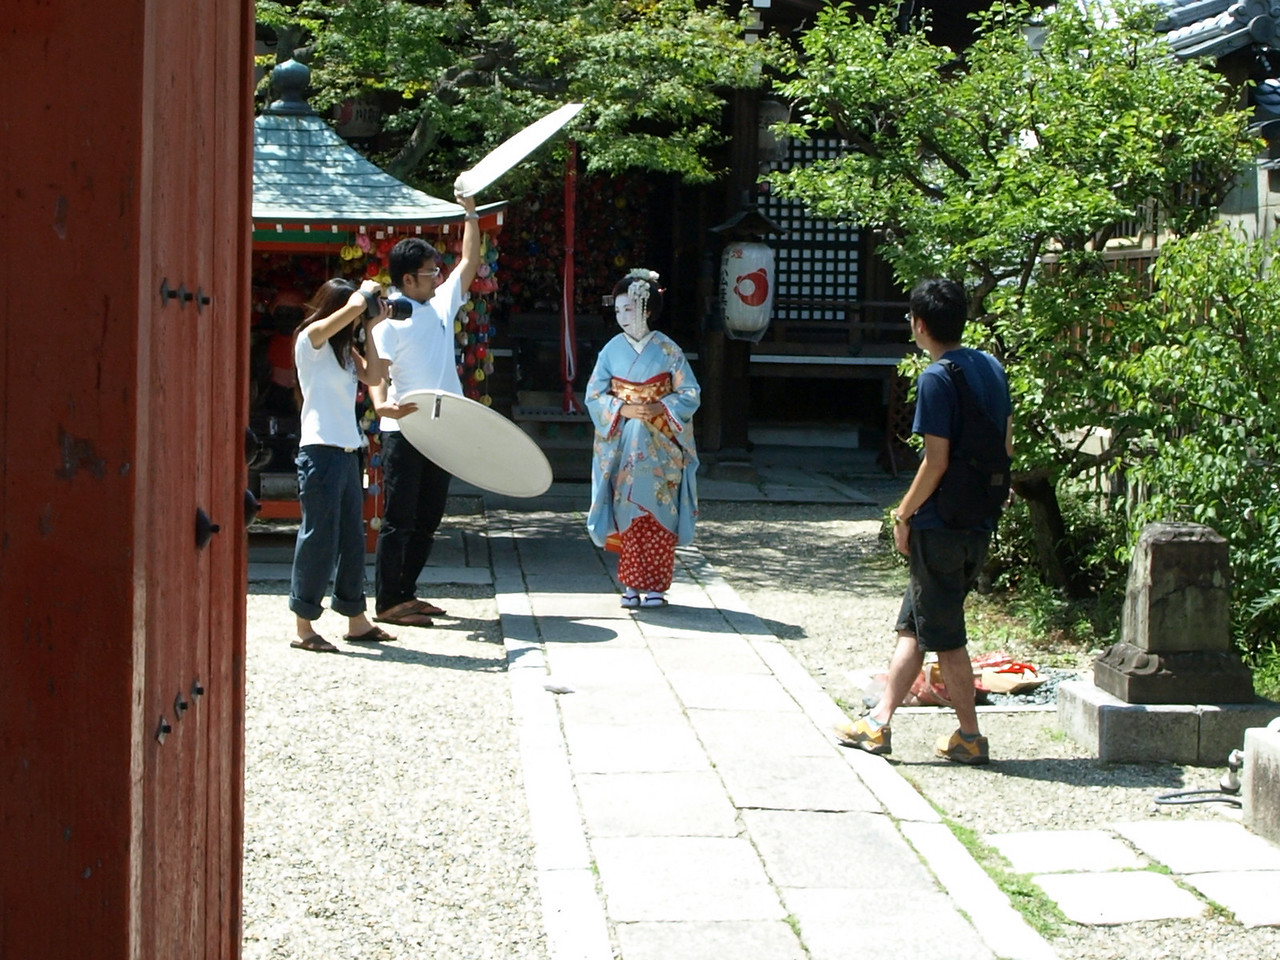 The maiko is photographed. We photograph the photographer. But who will photograph us?